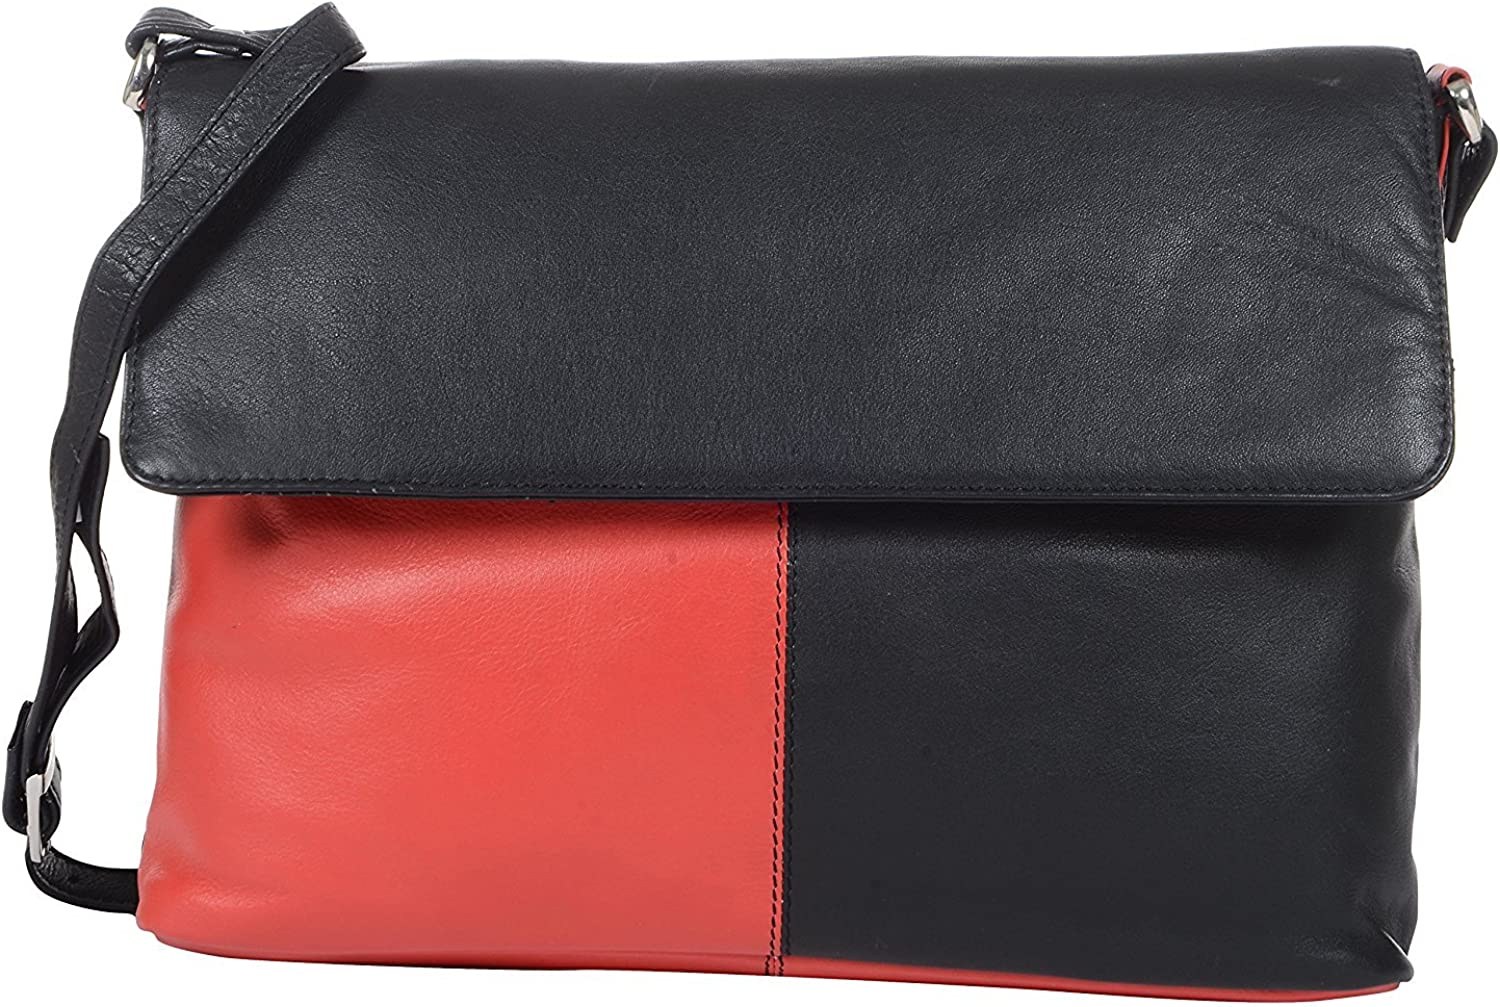 HiLEDER Women's Genuine Nappa Leather Shoulder Crossboady Messenger Bag Purse (Red and Black)